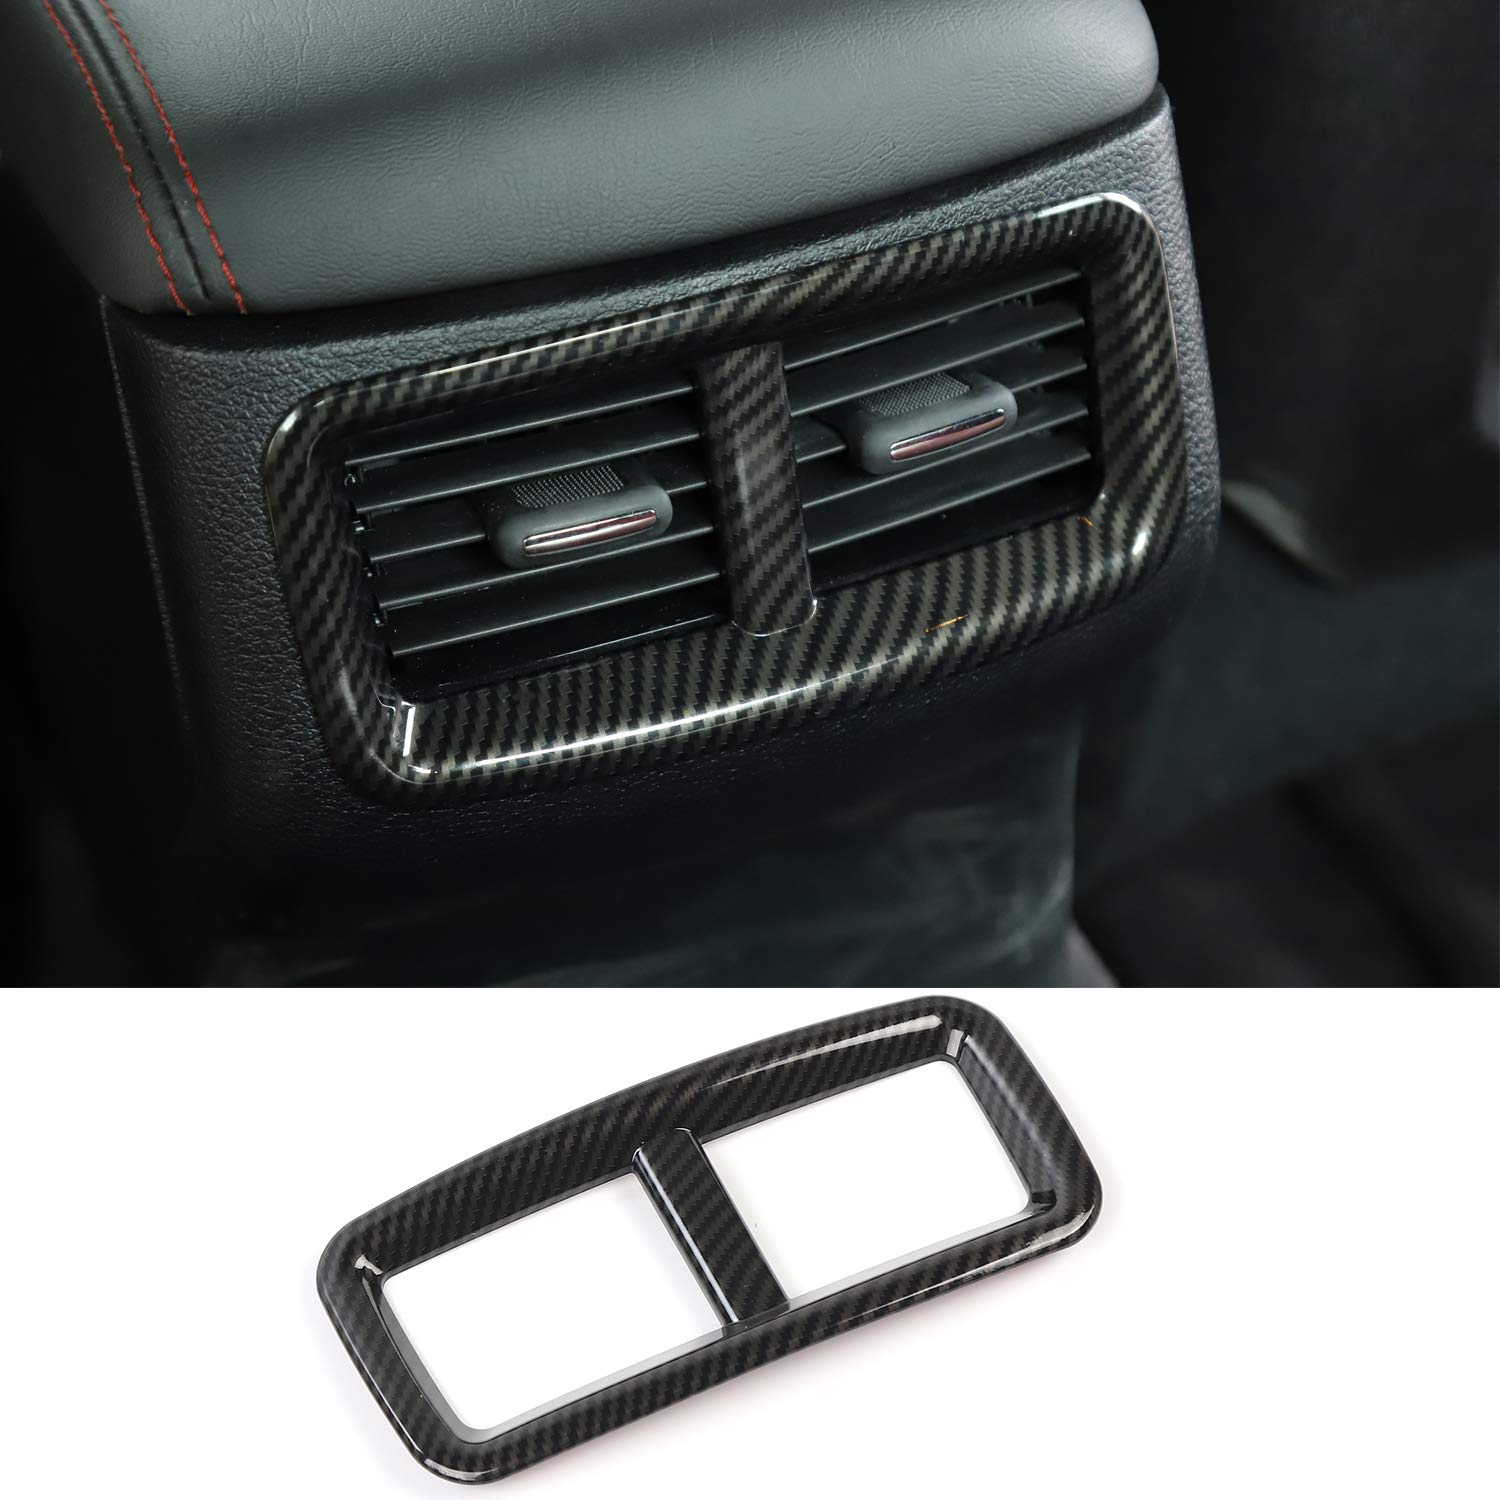 Voodonala for Challenger Center Console Air Condition Outlet Vent Trim Accessories for Dodge Challenger 2015 up Silver, 4ps